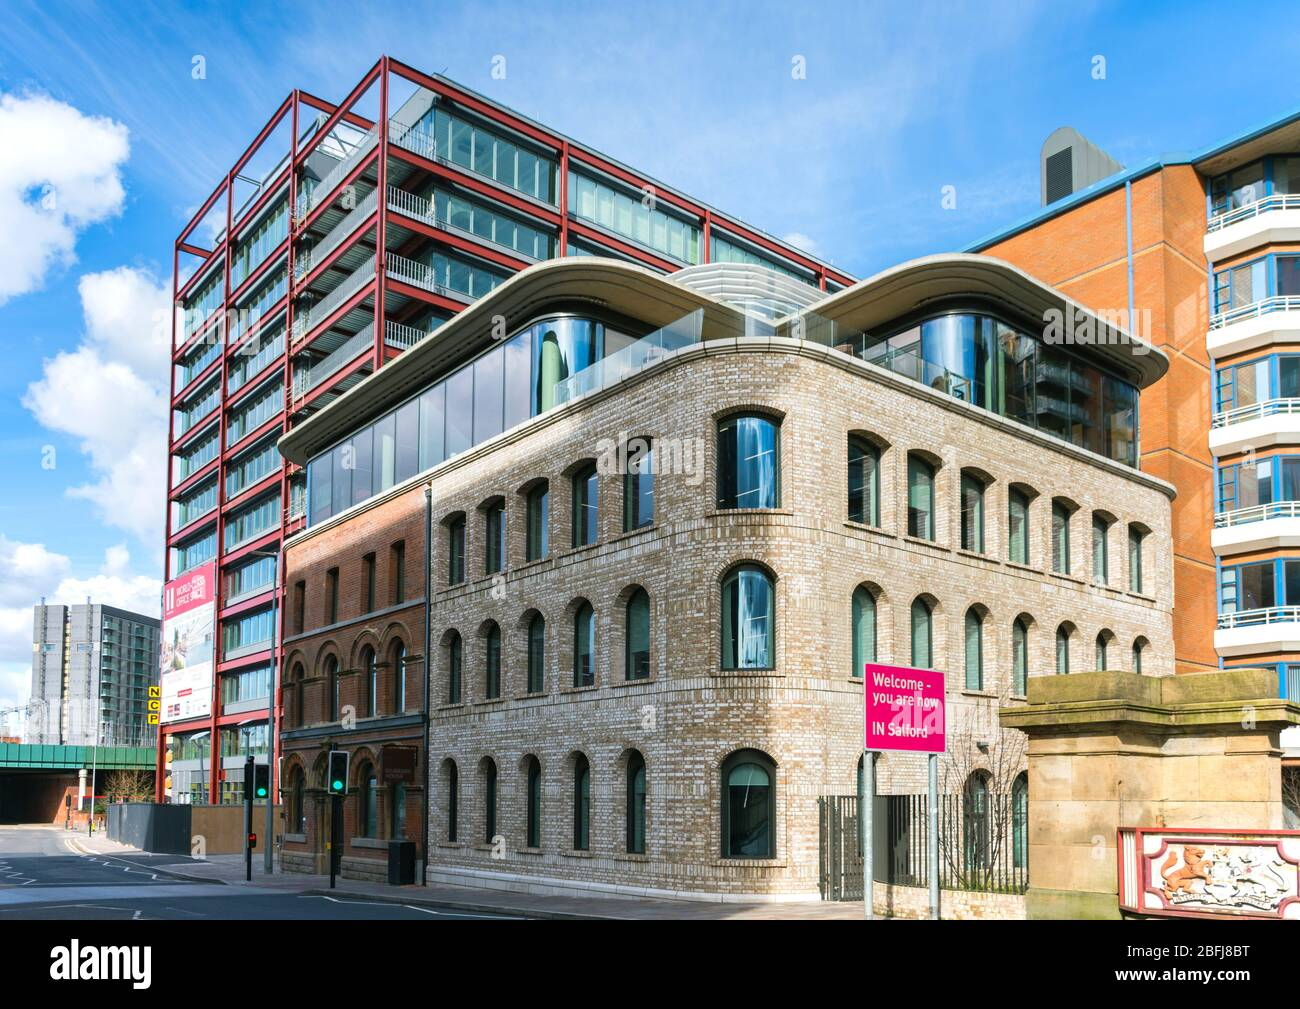 The Two New Bailey Square and the Riverside House office buildings, New Bailey, Salford, Manchester, UK Stock Photo